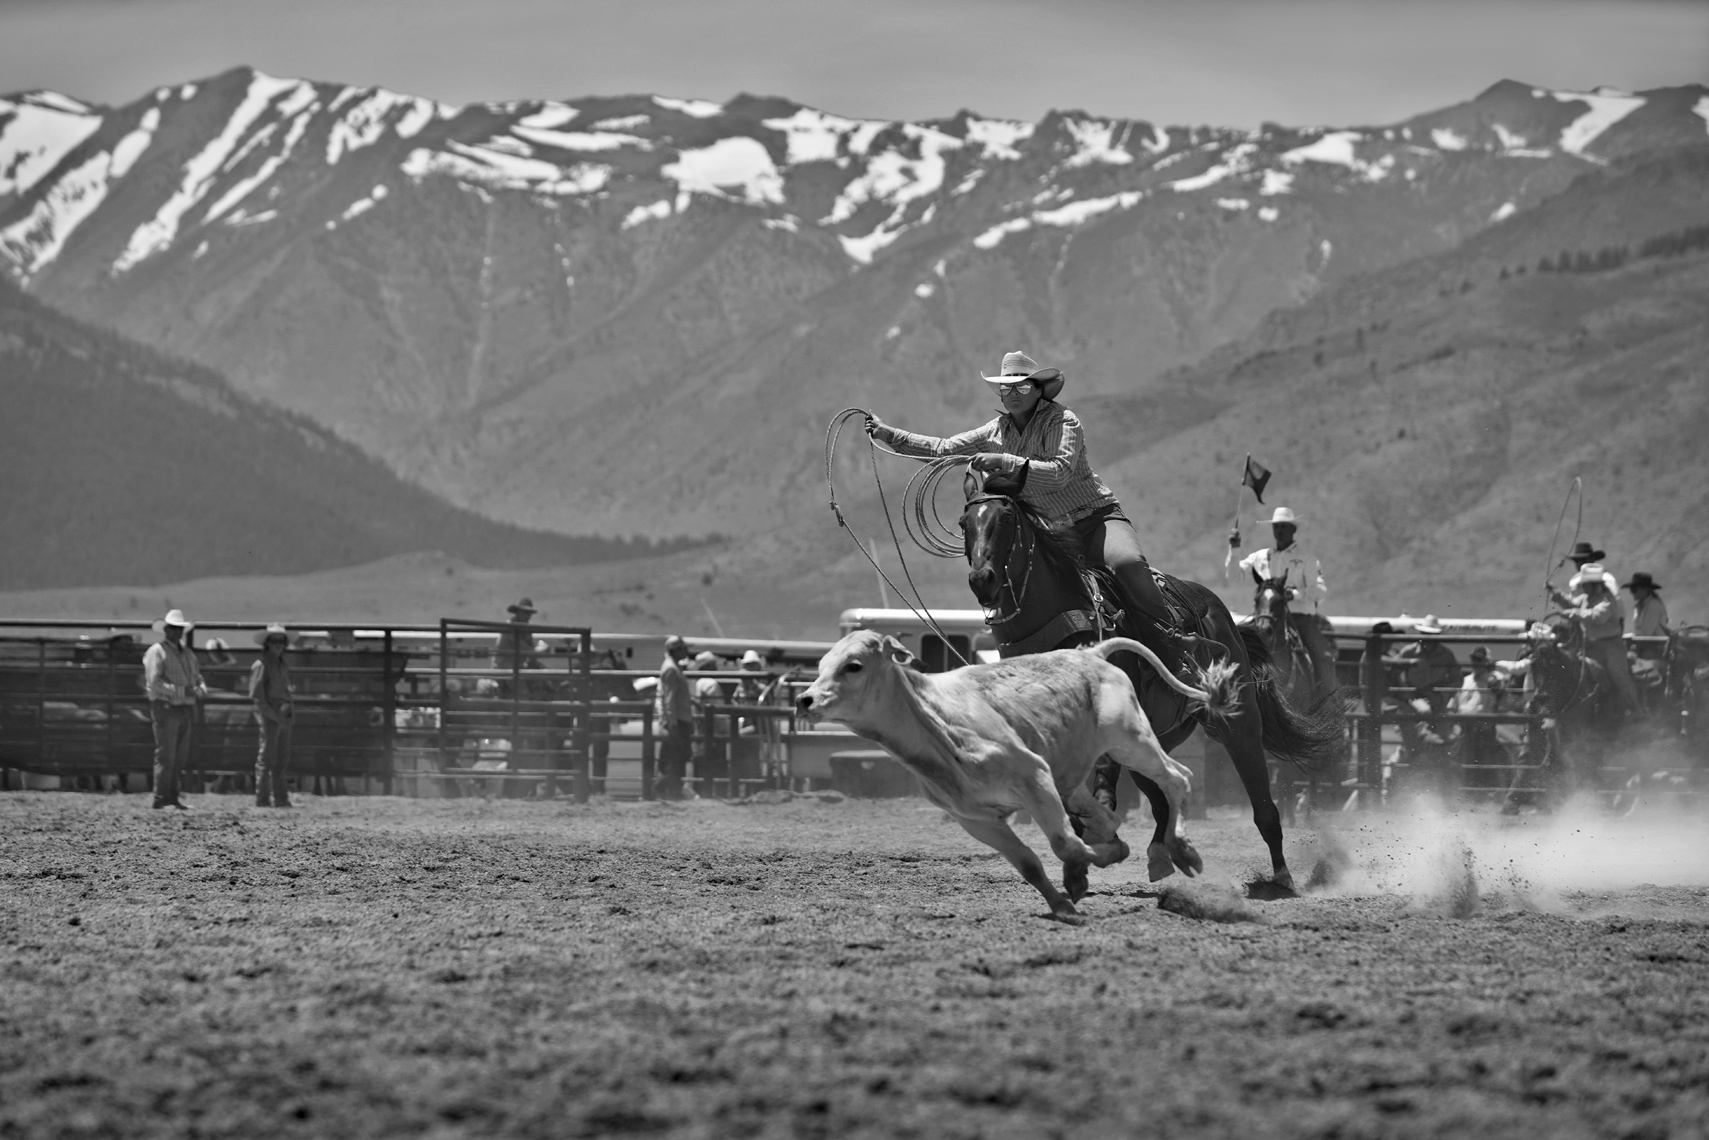 Roadtripping_BridgeportRodeo_CowgirlsCalfRoping03_Action_Personal_Retouched_Web